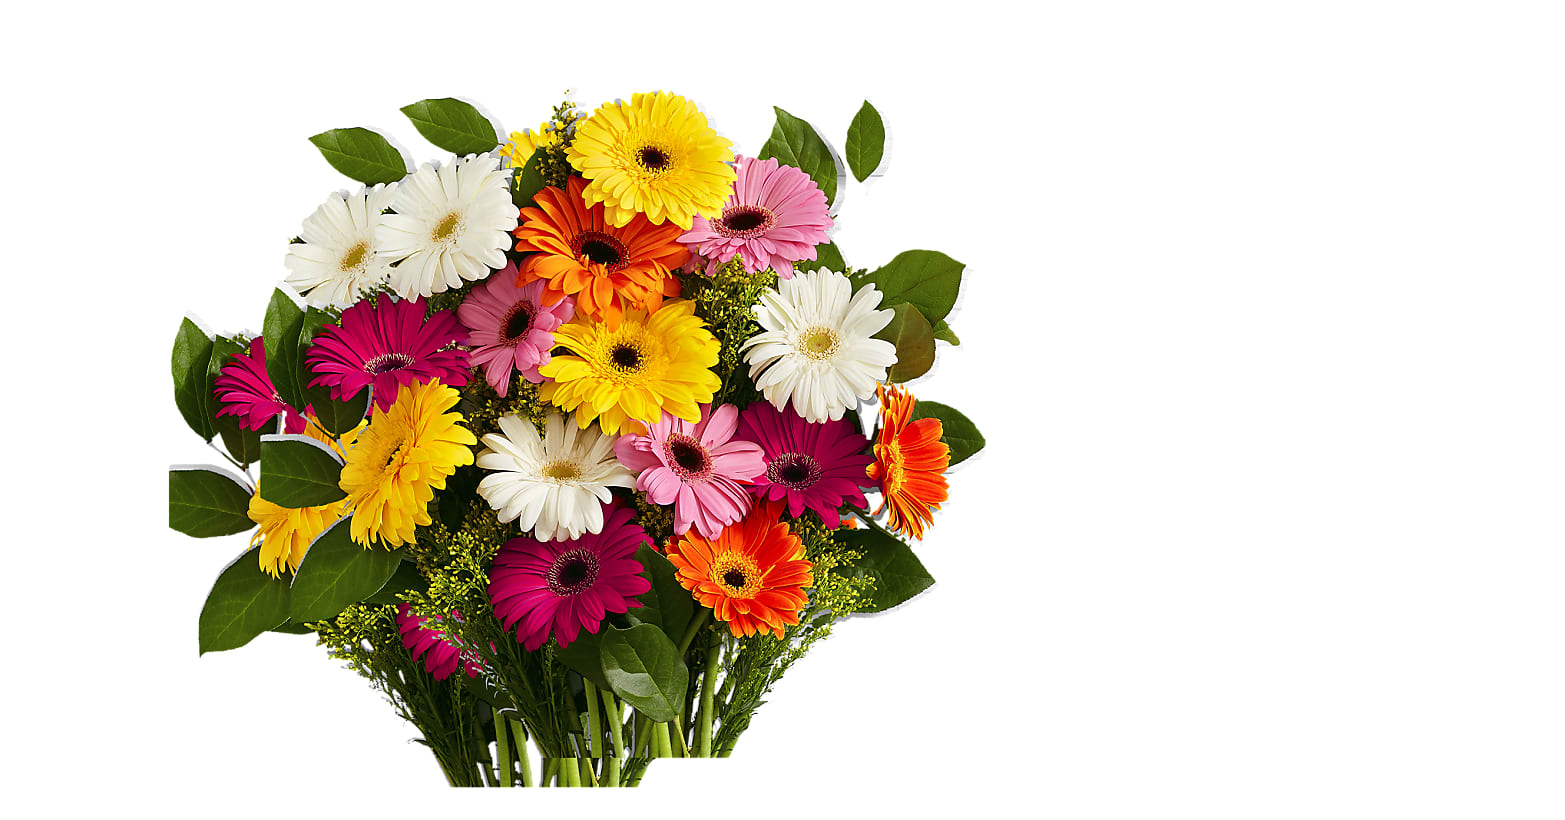 Colorful Gerbera Daisies - Image 1 Of 4